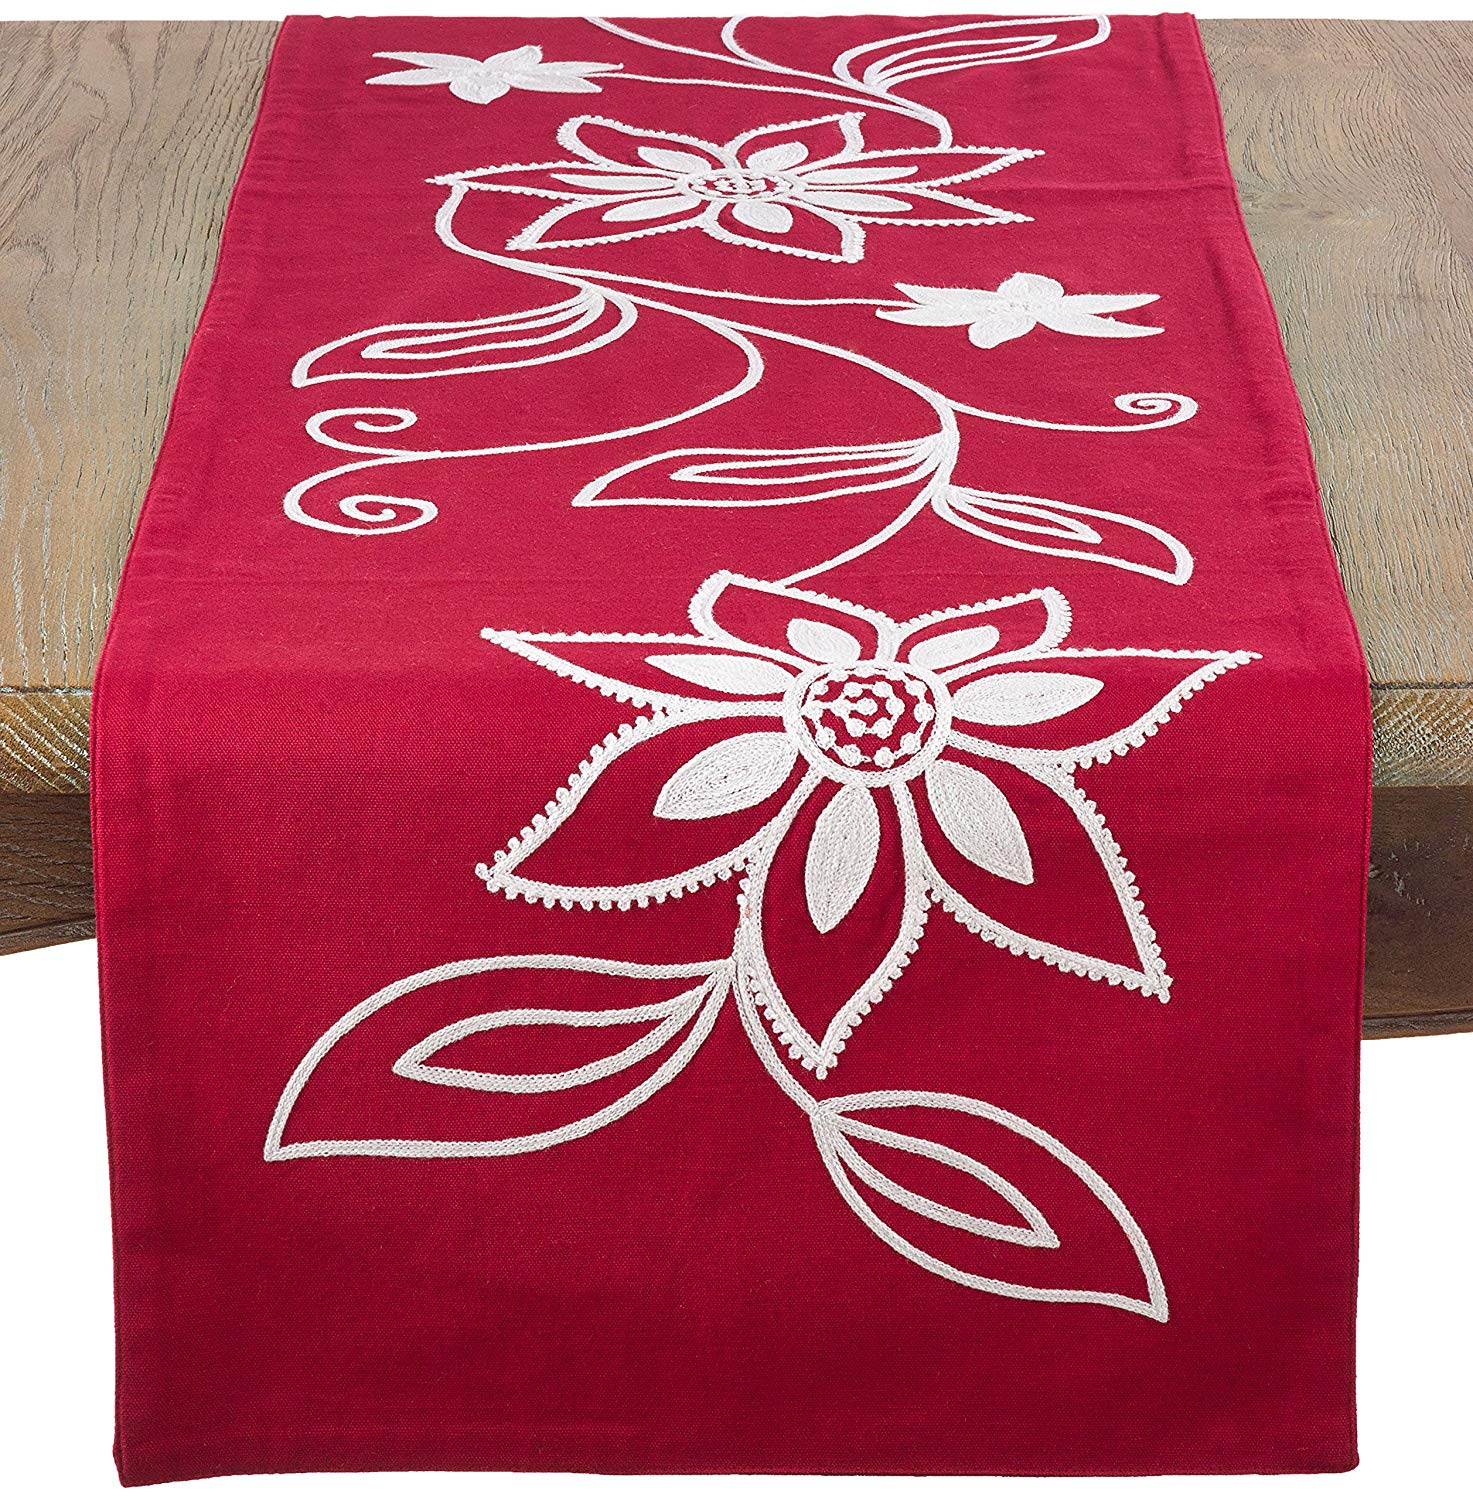 saro flower design holiday poinsettia table runner red cxrykpxl accent your focus free pattern home kitchen pottery barn round glass dining tablecloths and placemats diy farmhouse